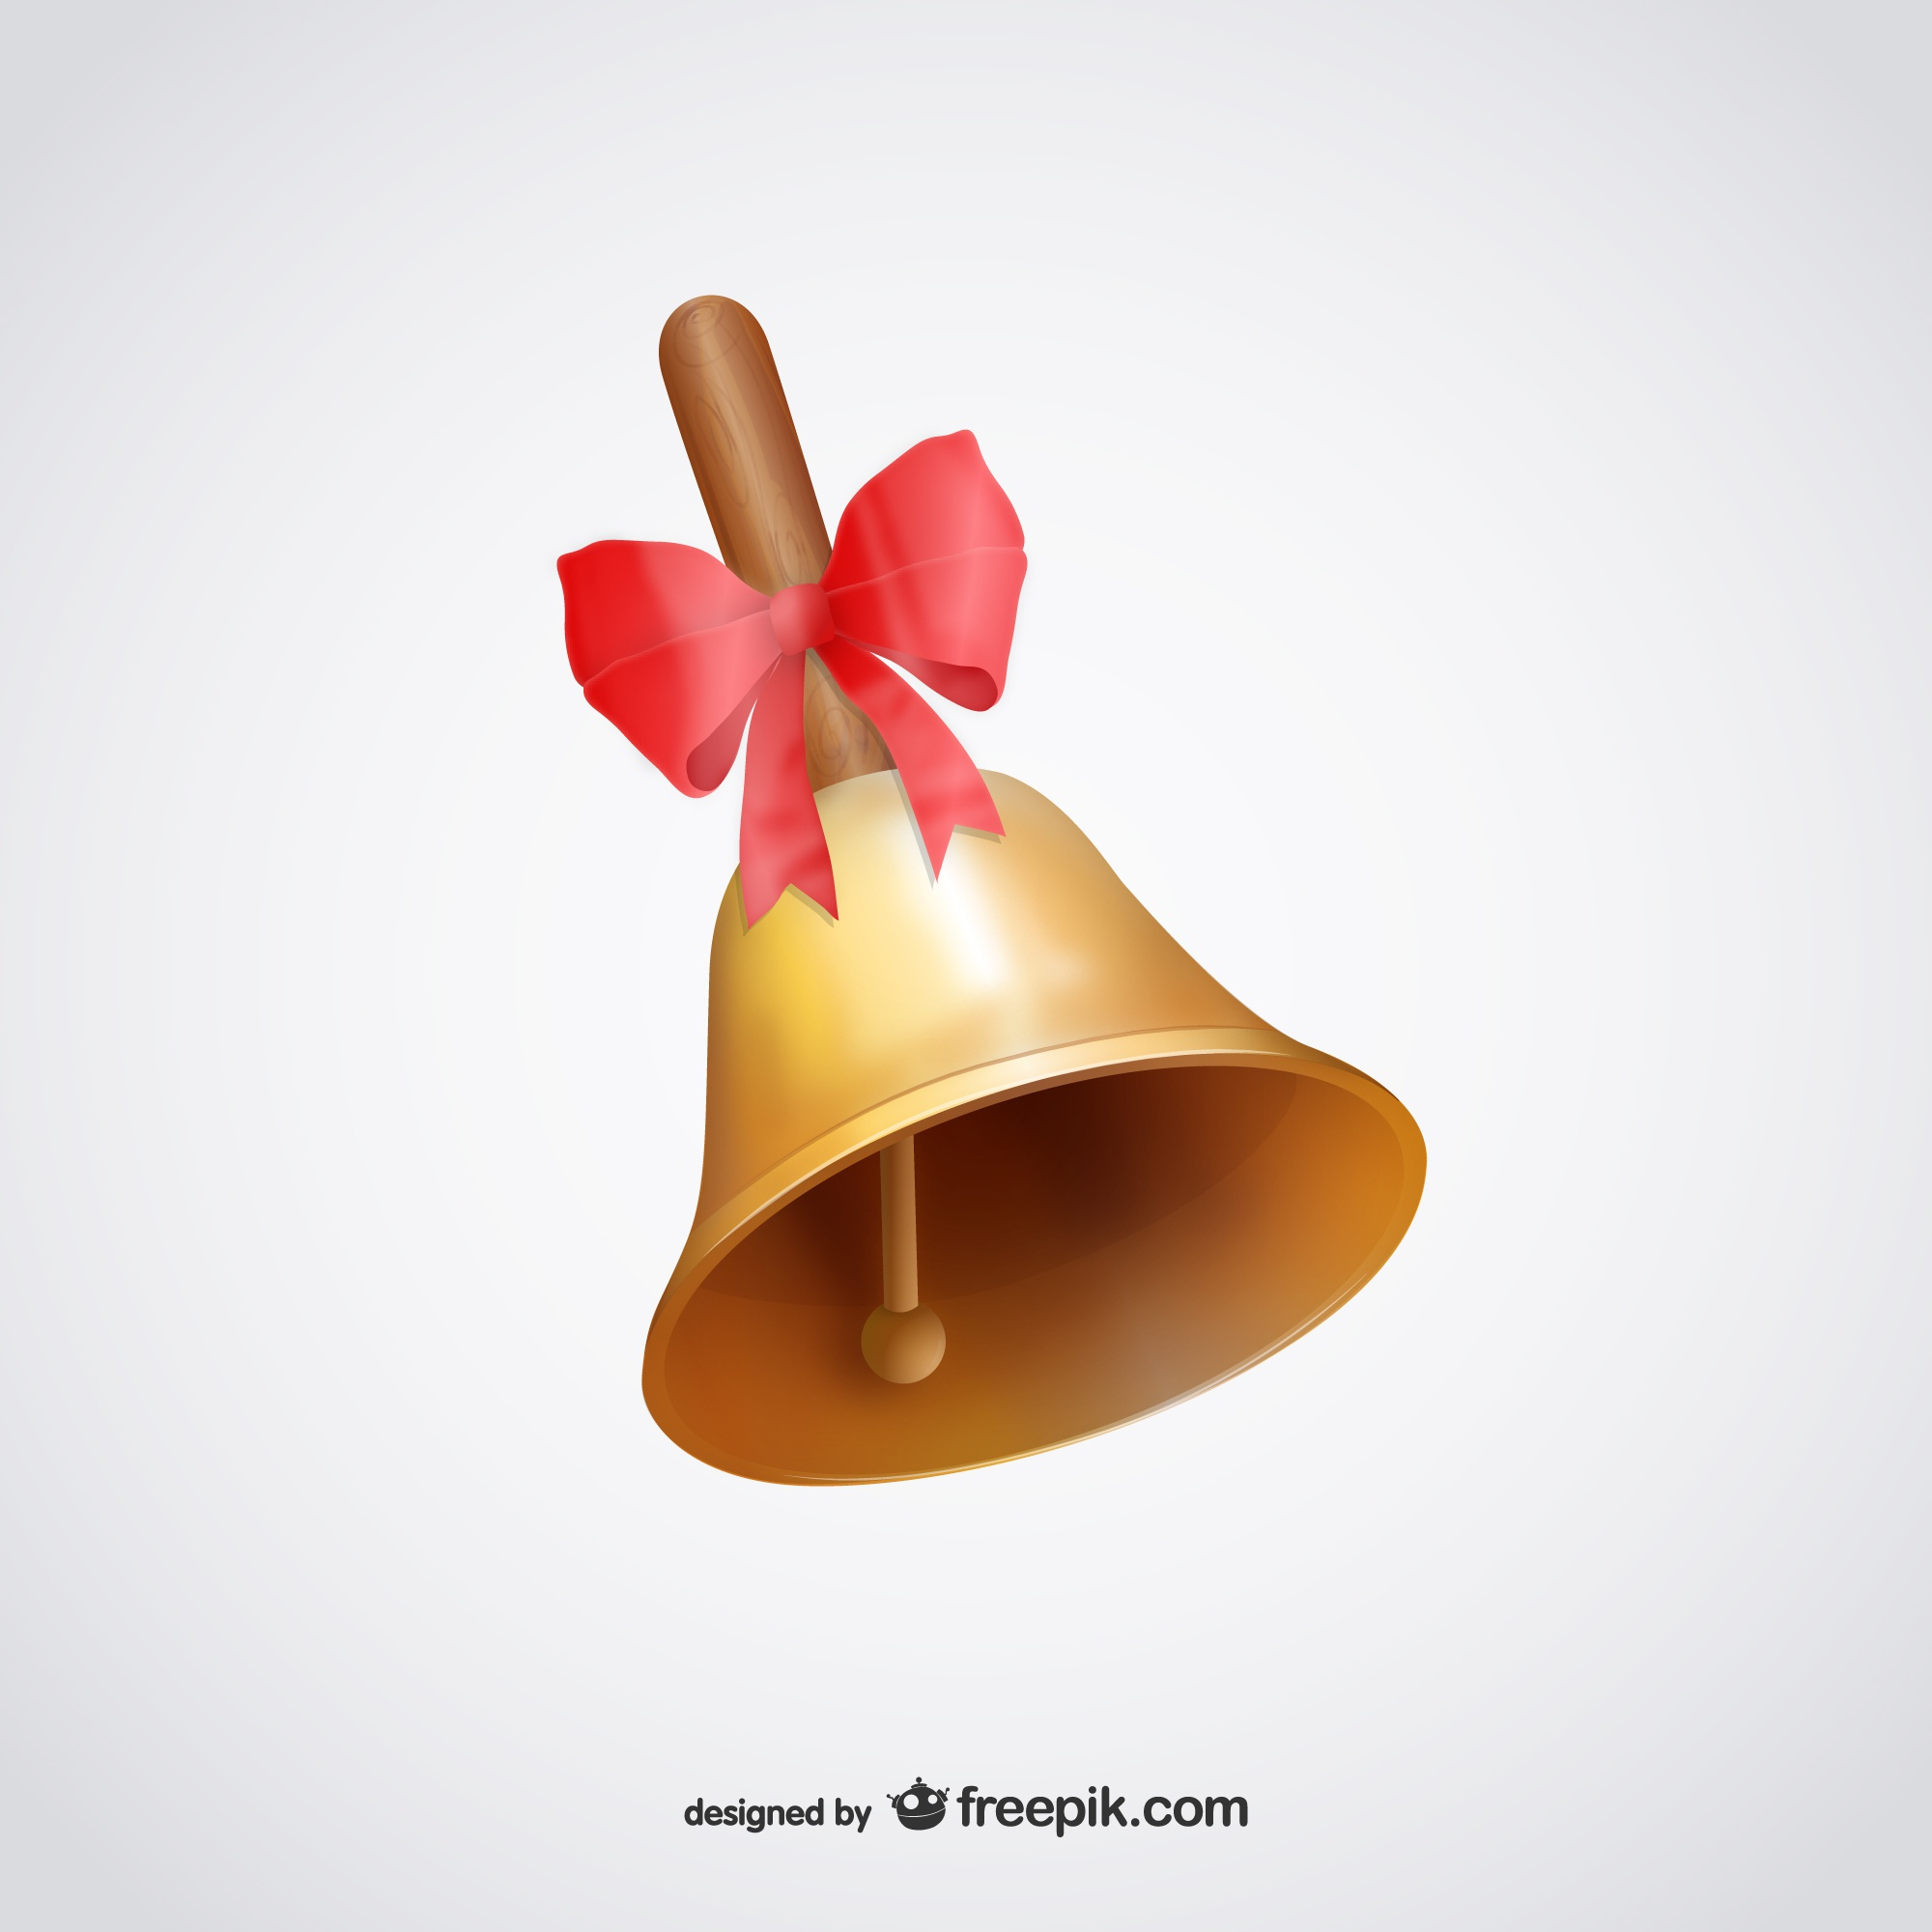 Bell with red ribbon illustration